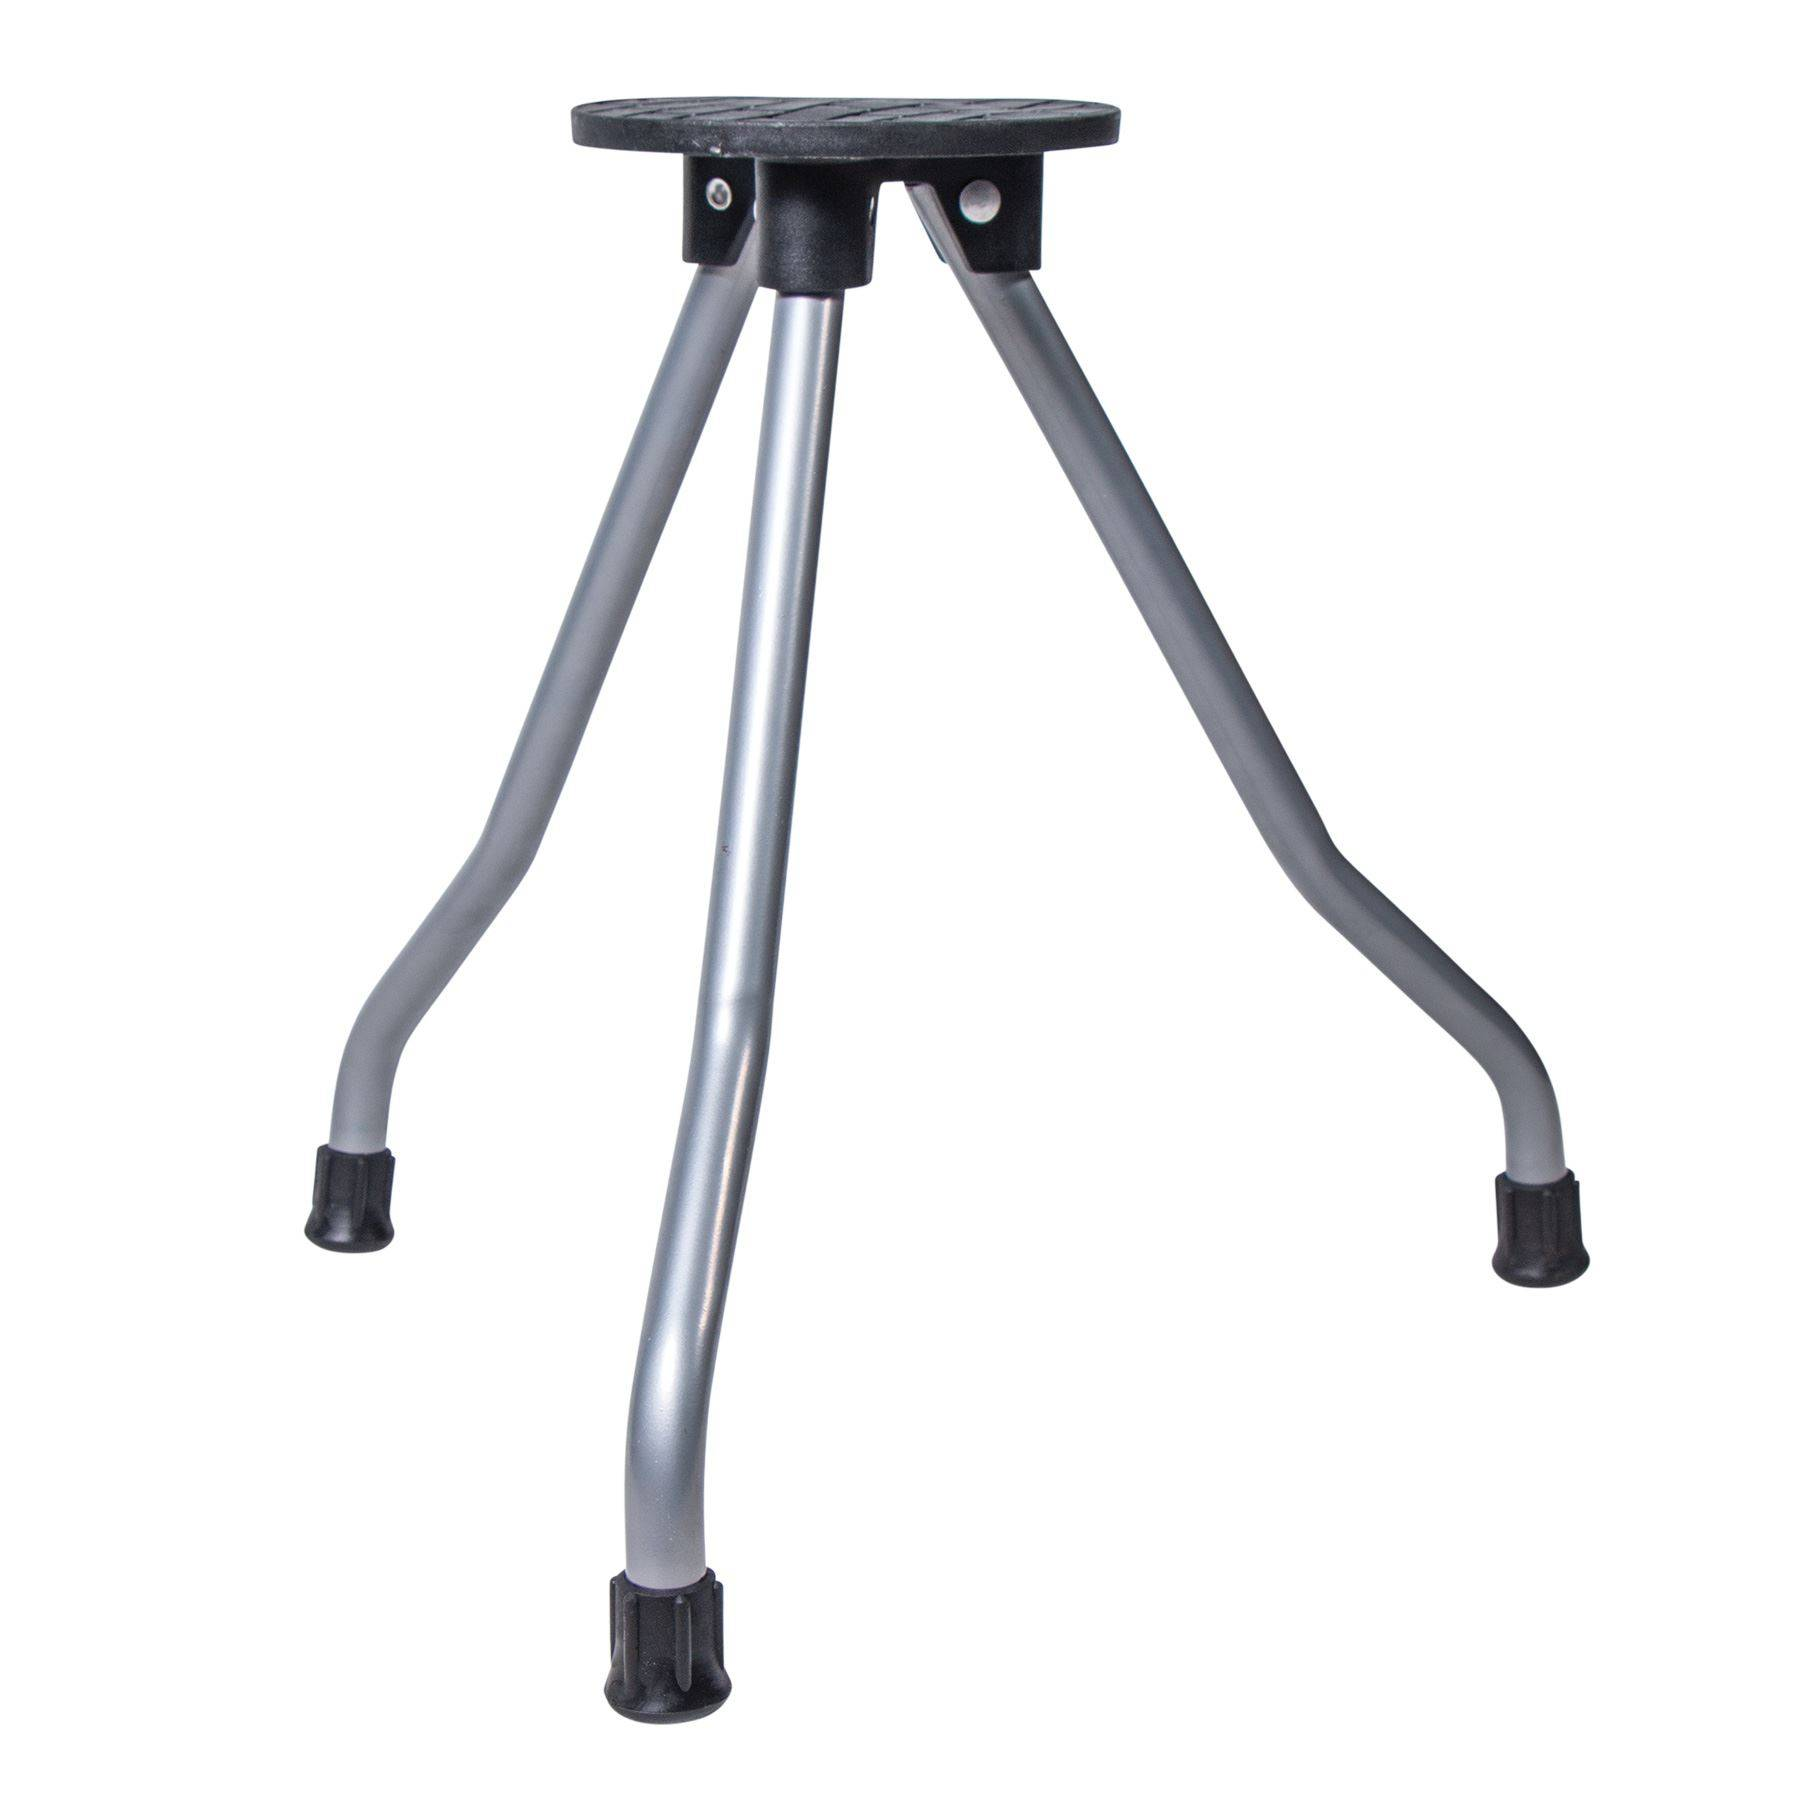 Marvelous Dura Tech Easy Mount Tall Step Stool Alphanode Cool Chair Designs And Ideas Alphanodeonline